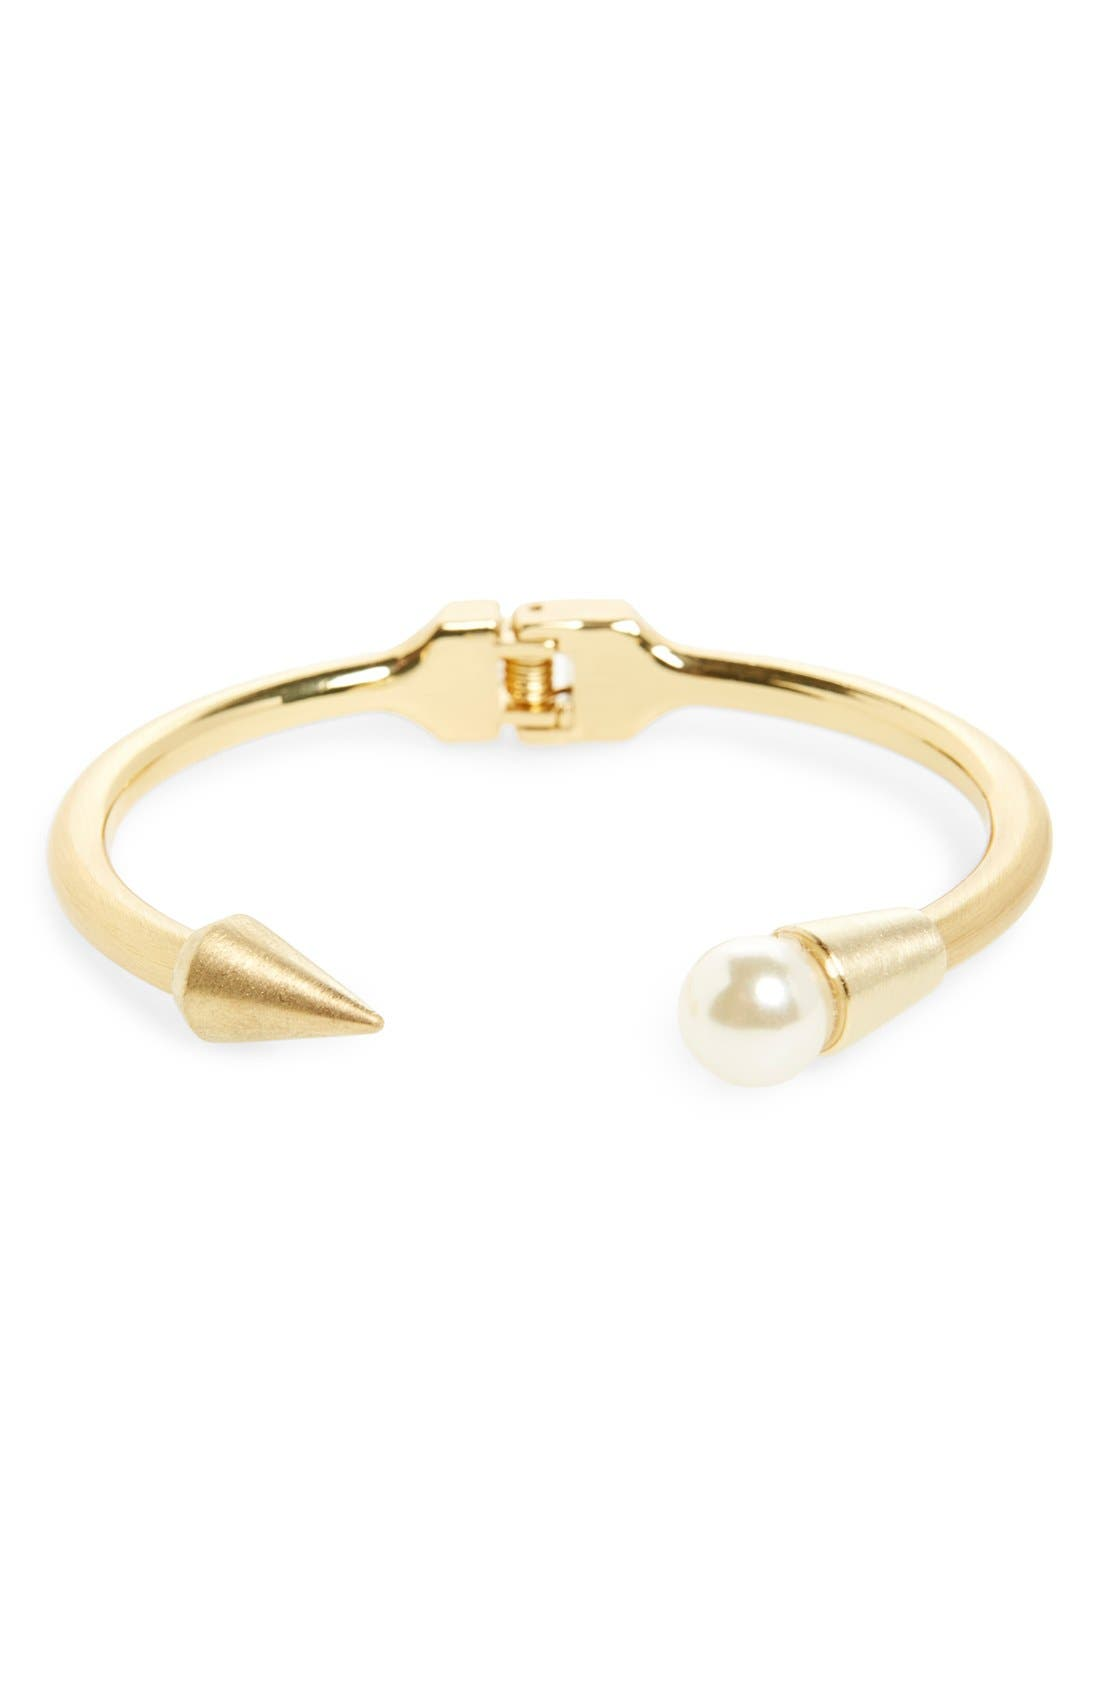 Main Image - Panacea Pearly Bead & Spike Hinged Station Cuff